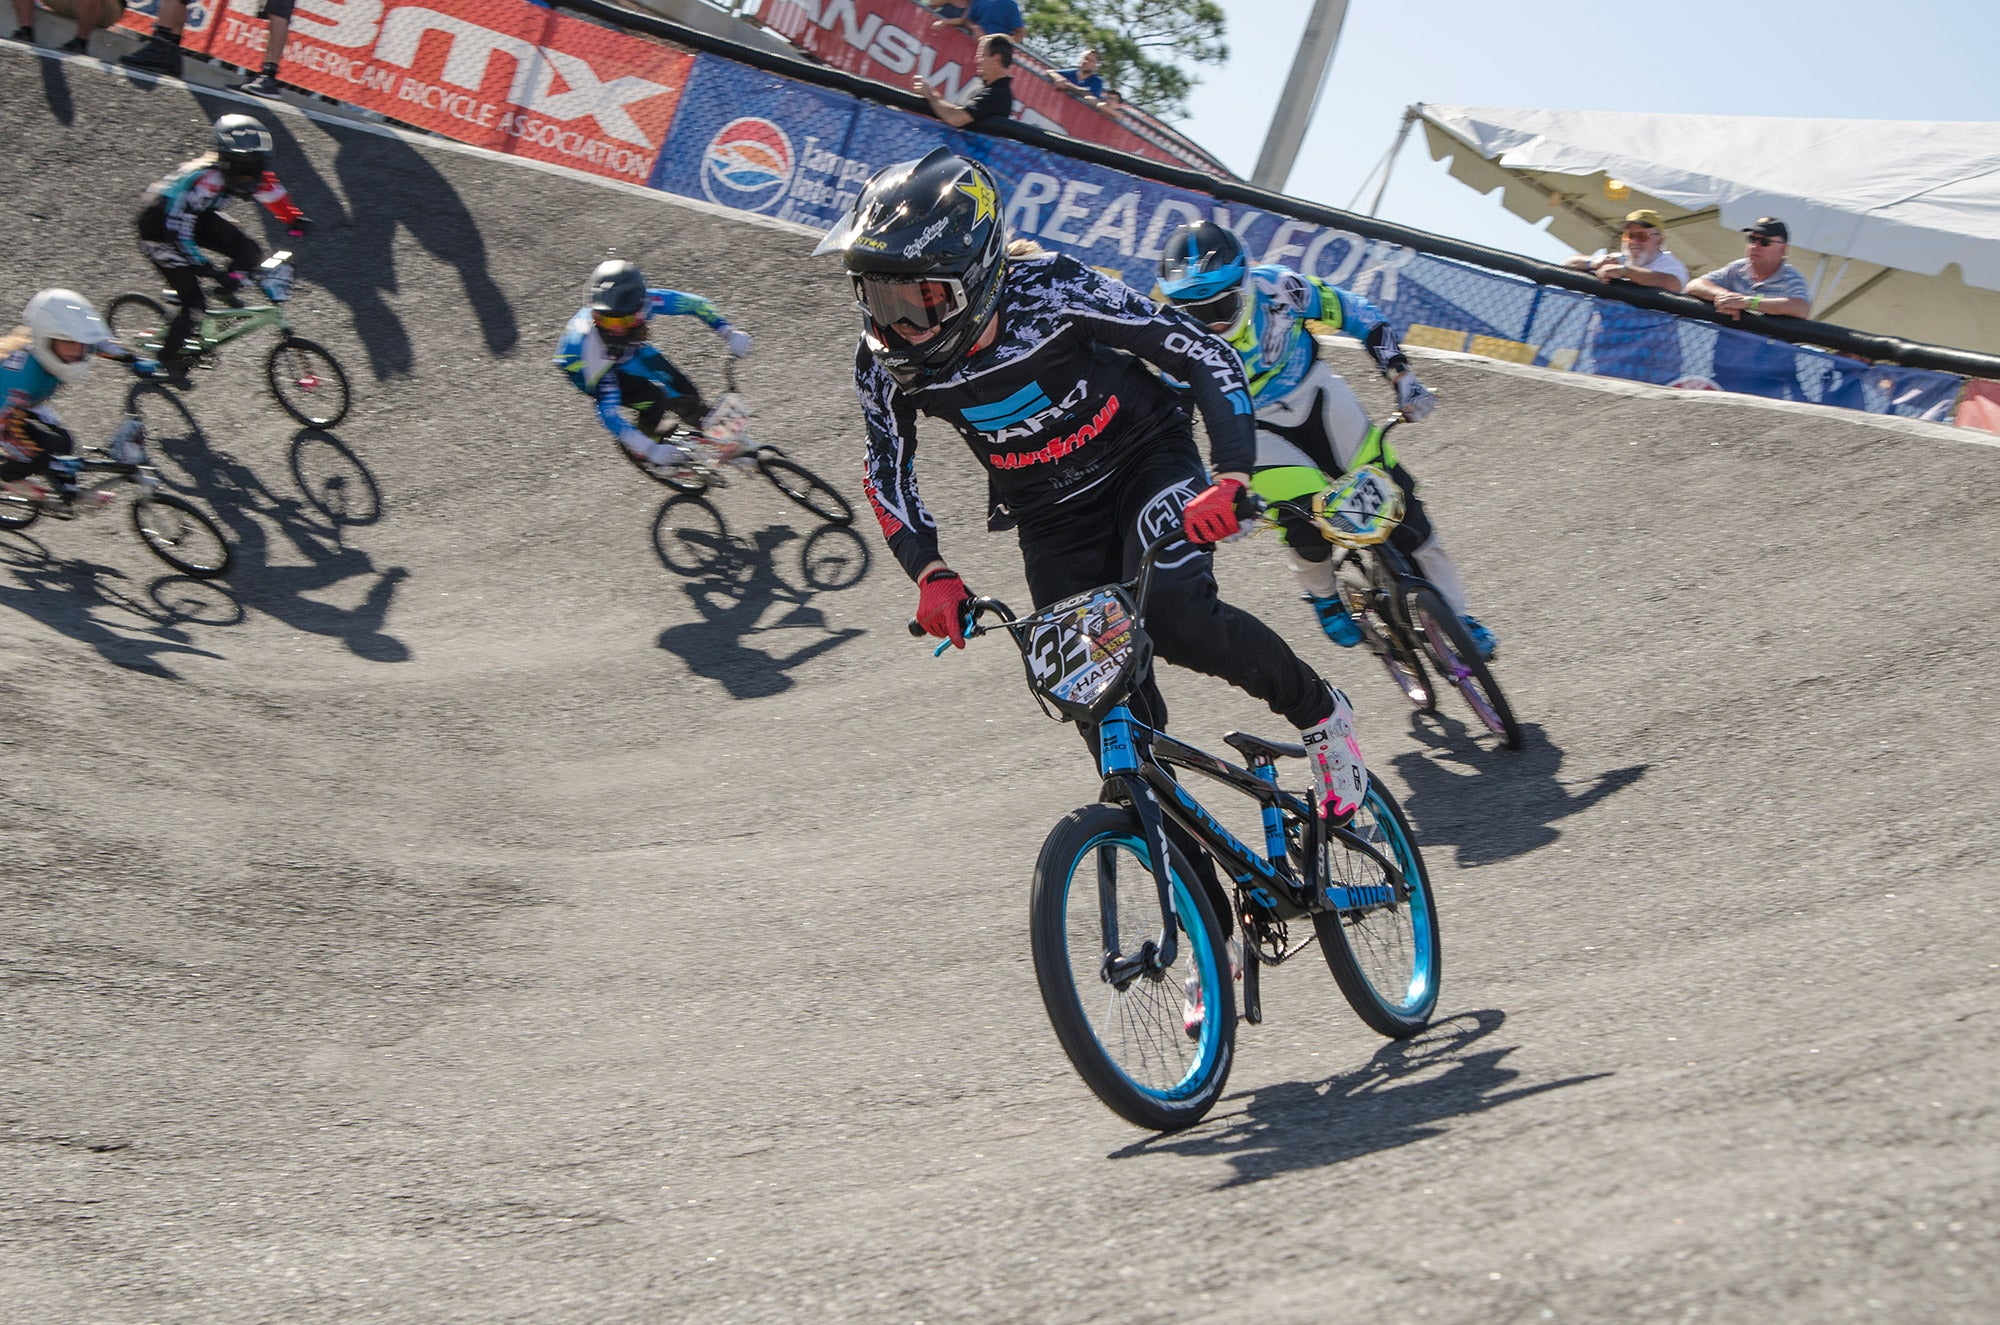 action photo of bmx racing